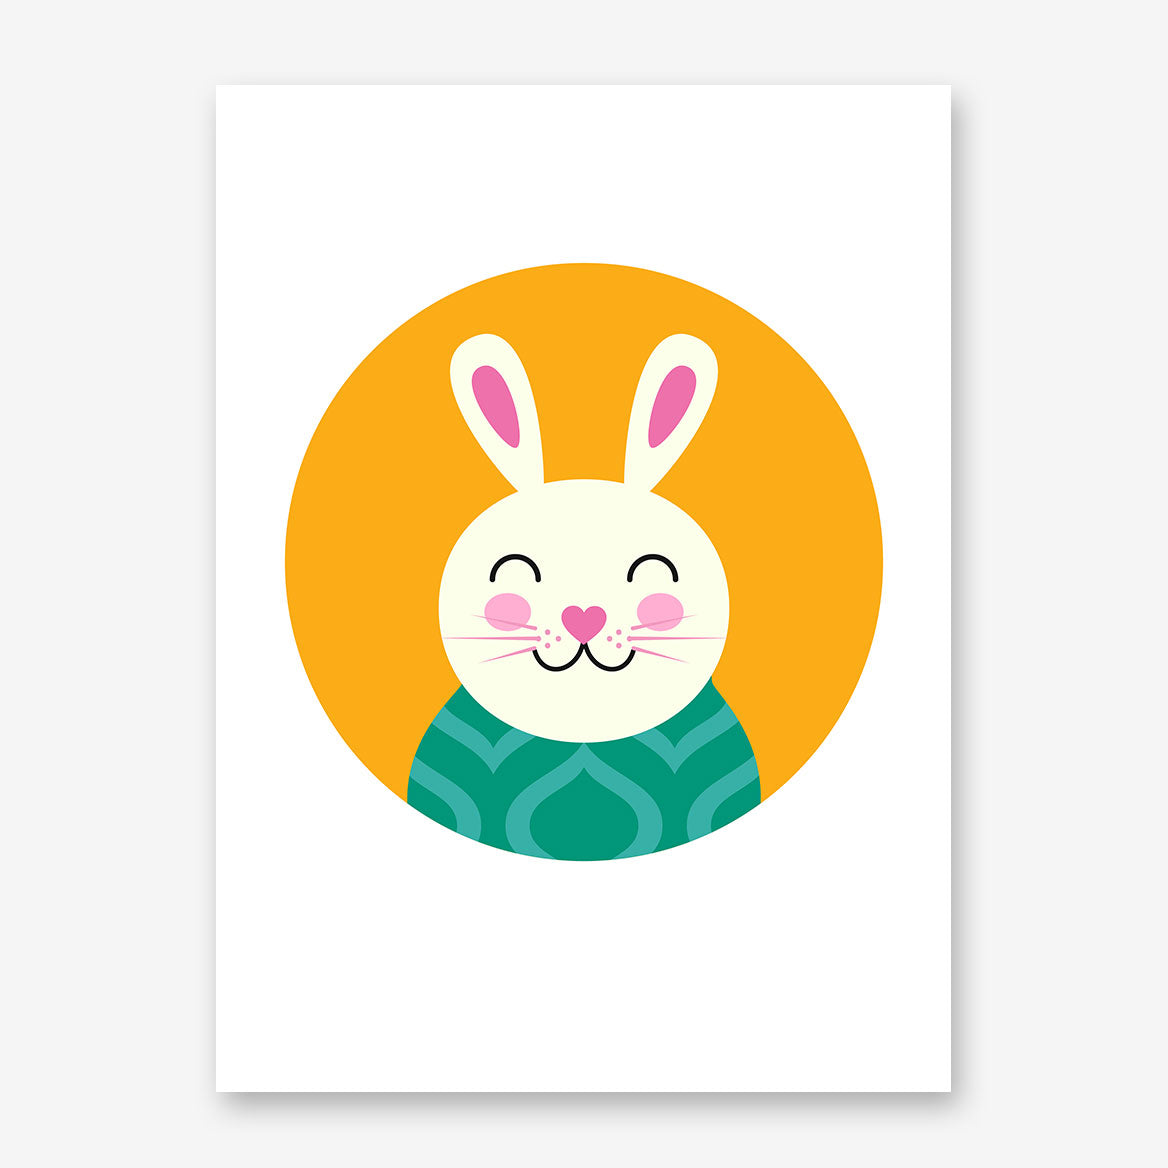 Nursery poster print with a smiley bunny in an orange circle.